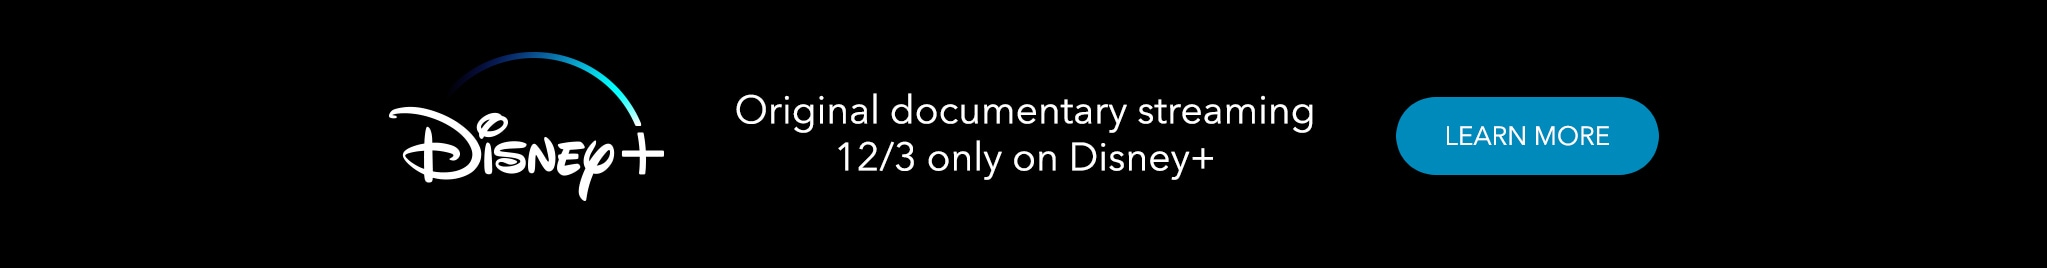 Original documentary streaming 12/3 only on Disney+.